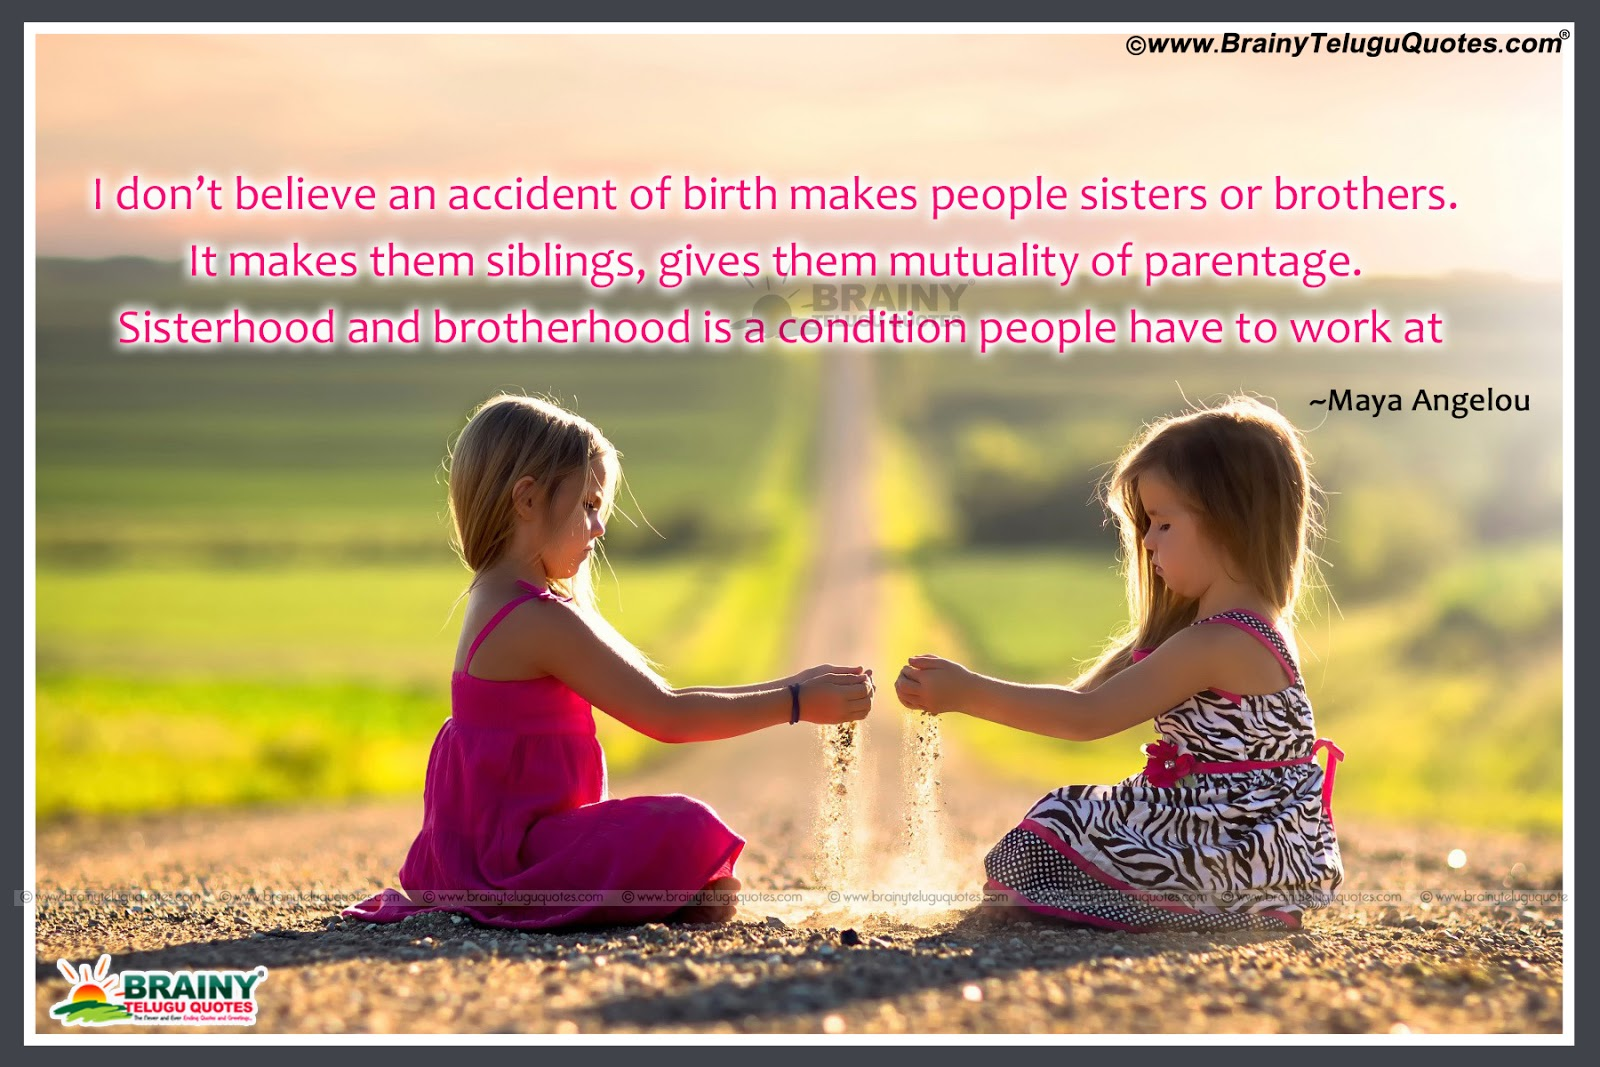 Brother And Sister Relationship Quotes With Images In Hindi: Sibling Quotes For Your Cute Brother